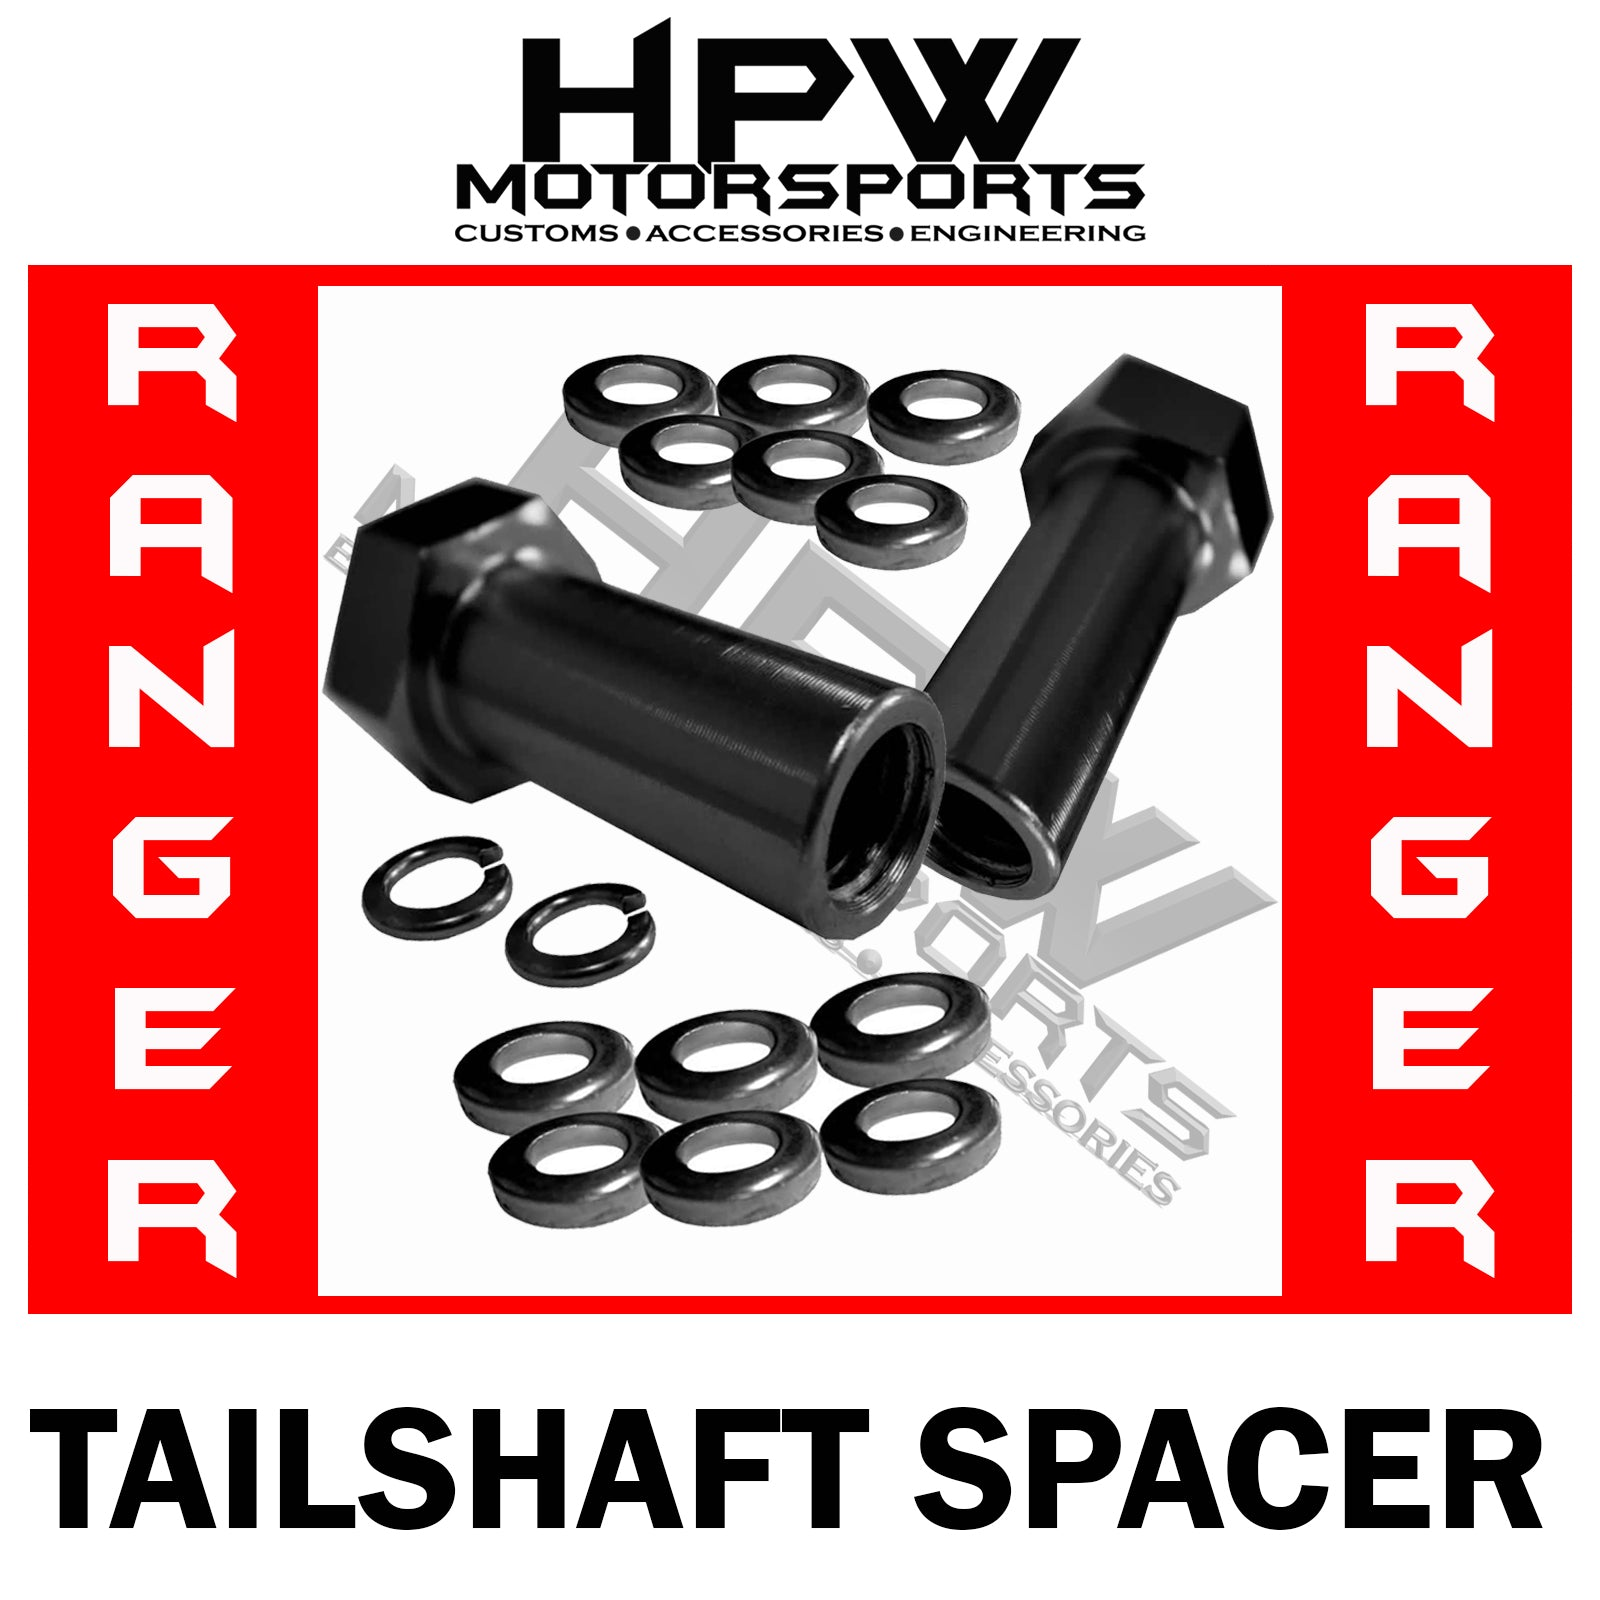 Tailshaft / Center bearing spacer KIT for Ford Ranger PX1 PX2